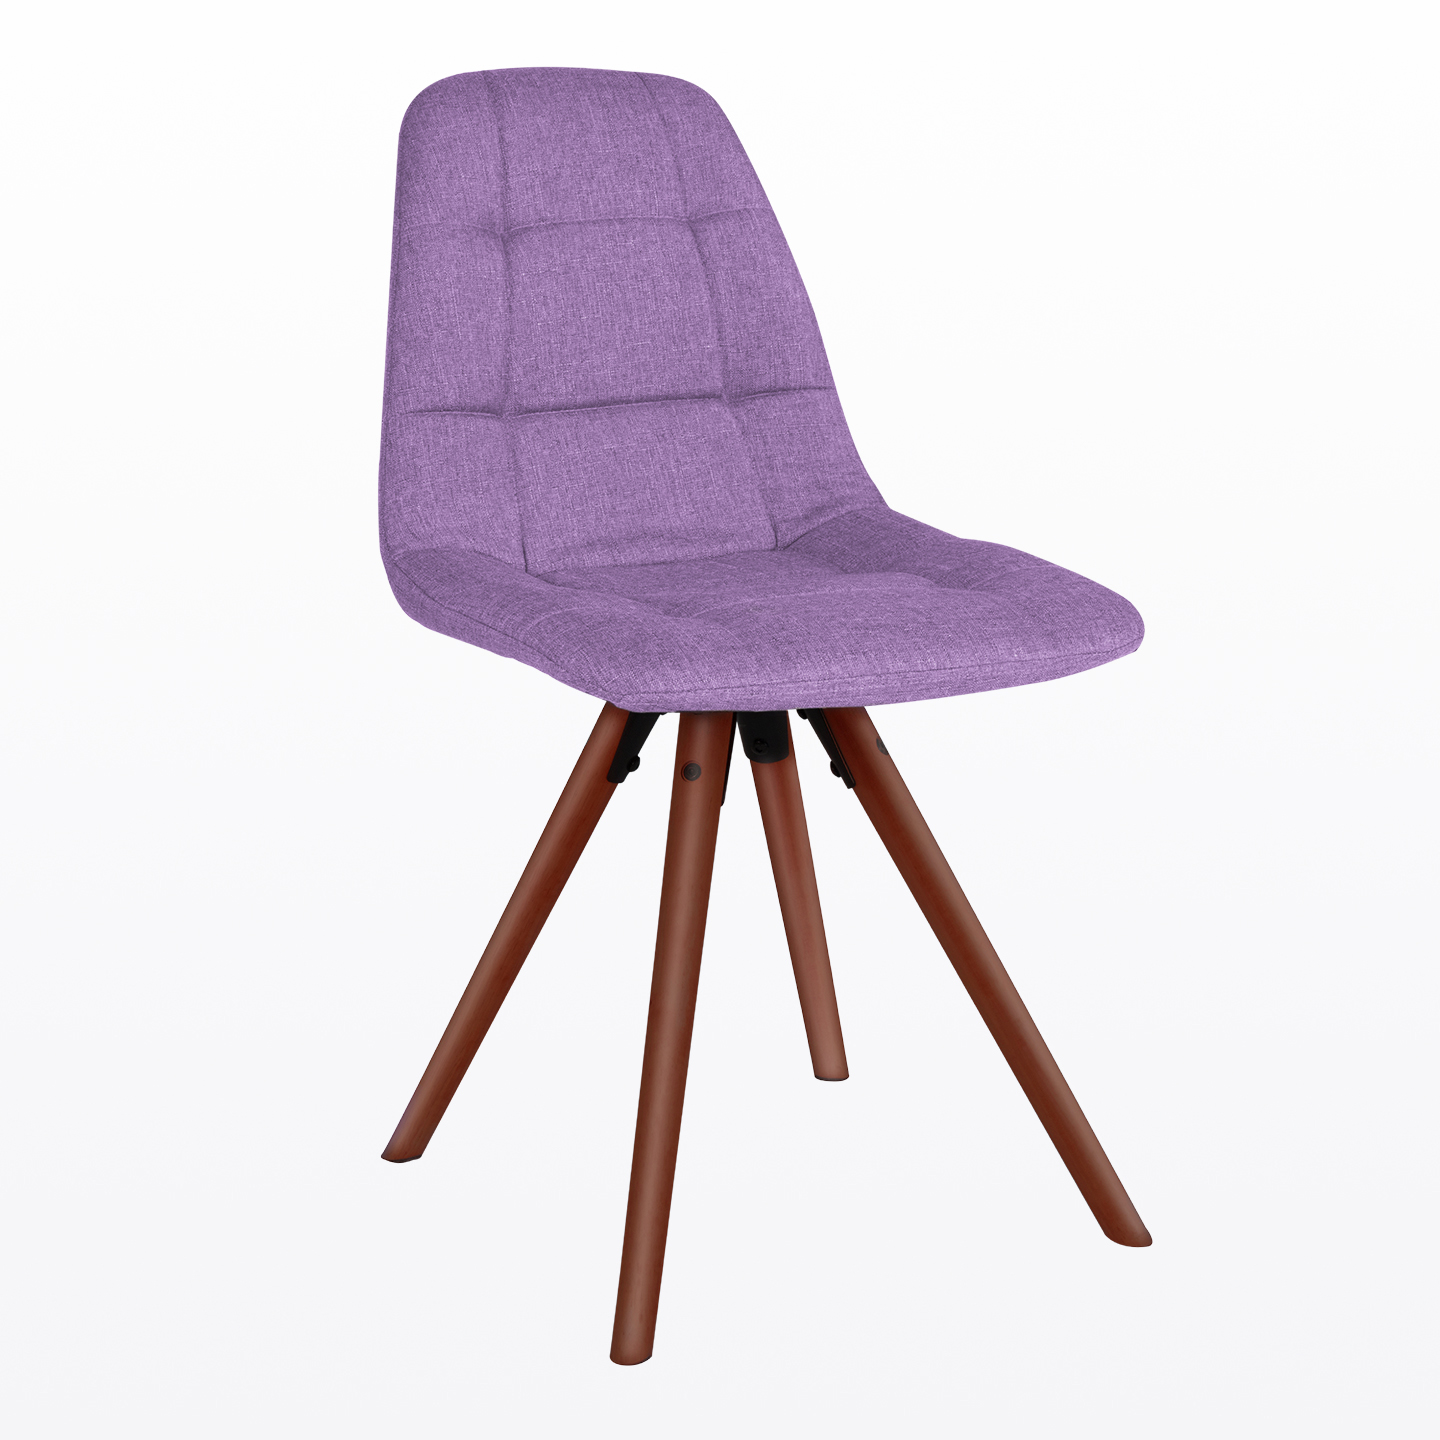 Marvelous Singapore Accent Chair Light Purple Bralicious Painted Fabric Chair Ideas Braliciousco